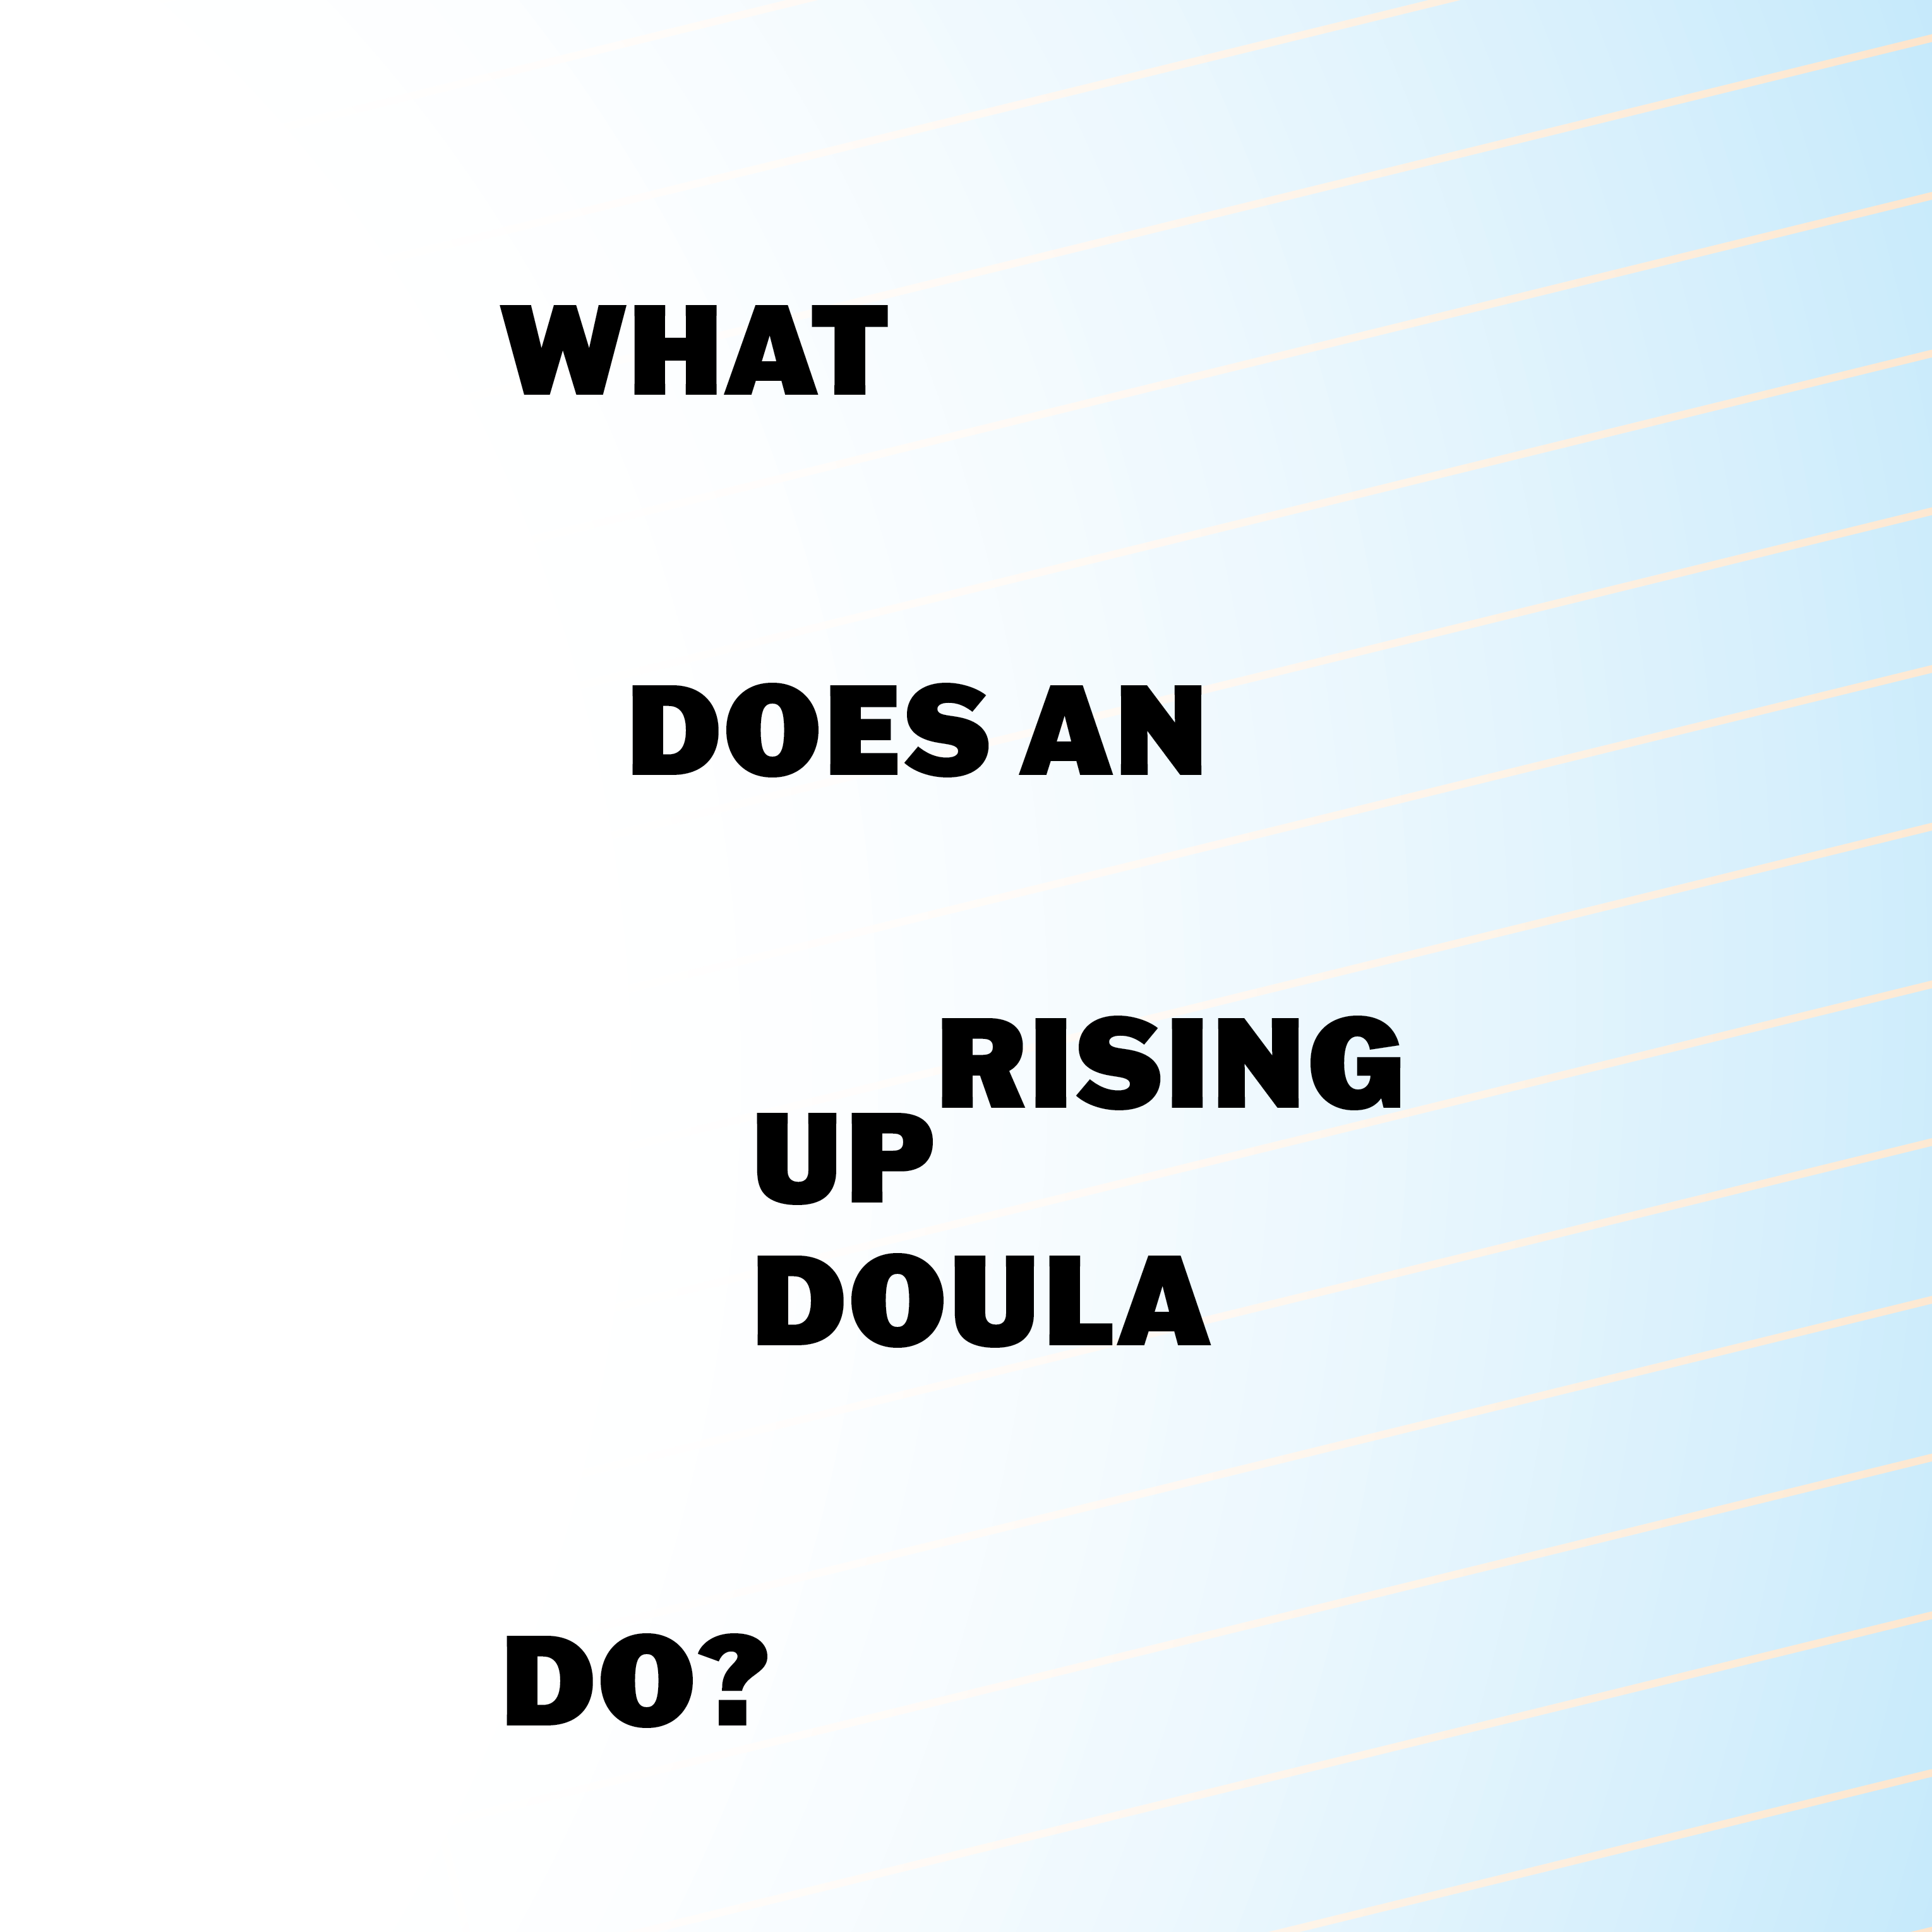 WHAT DOES AN UPRISING DOULA DO? ZINE, EDITED BY Abdul-Aliy Muhammad, Pato Hebert & WWHIVDD